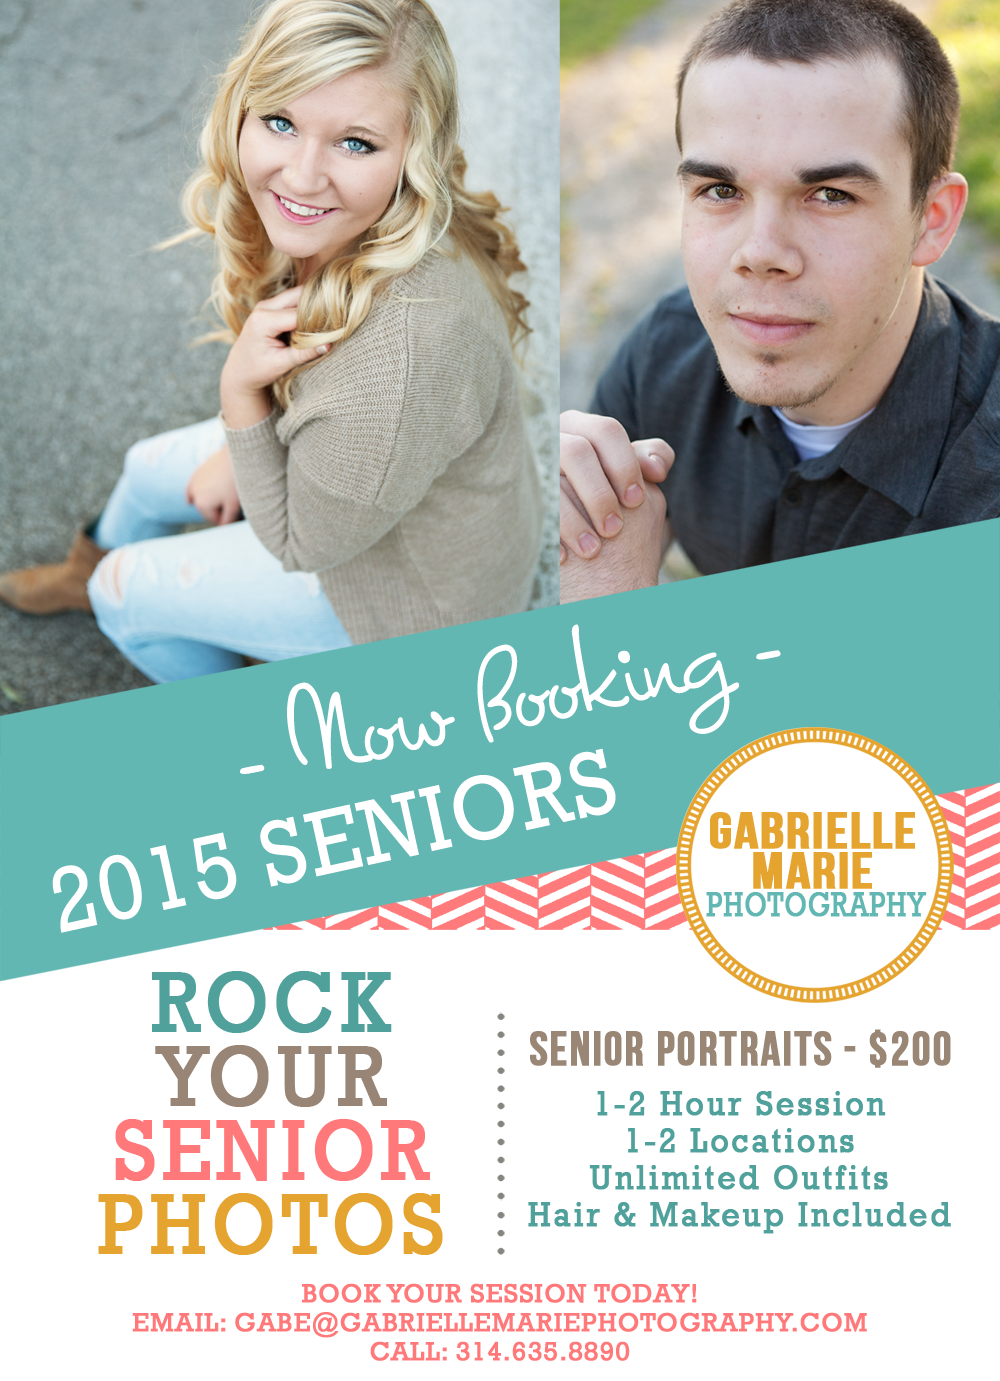 2015 senior pictures, St. Louis Senior photos, 2015 seniors, fun and creative senior portraits